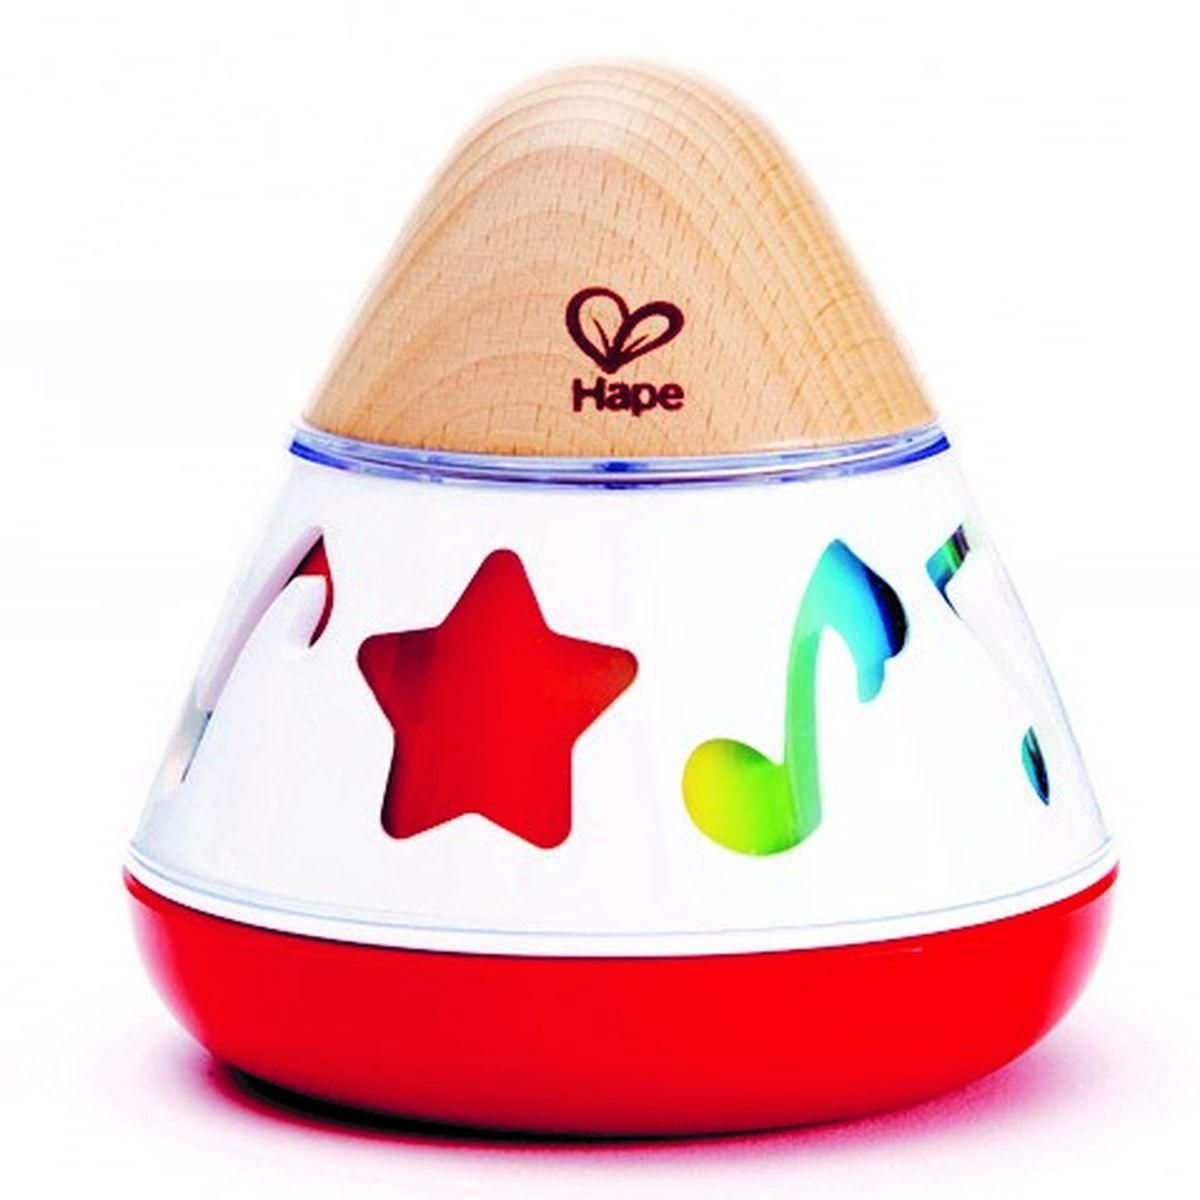 Instrument musique ROTATING MUSIC BOX Hape